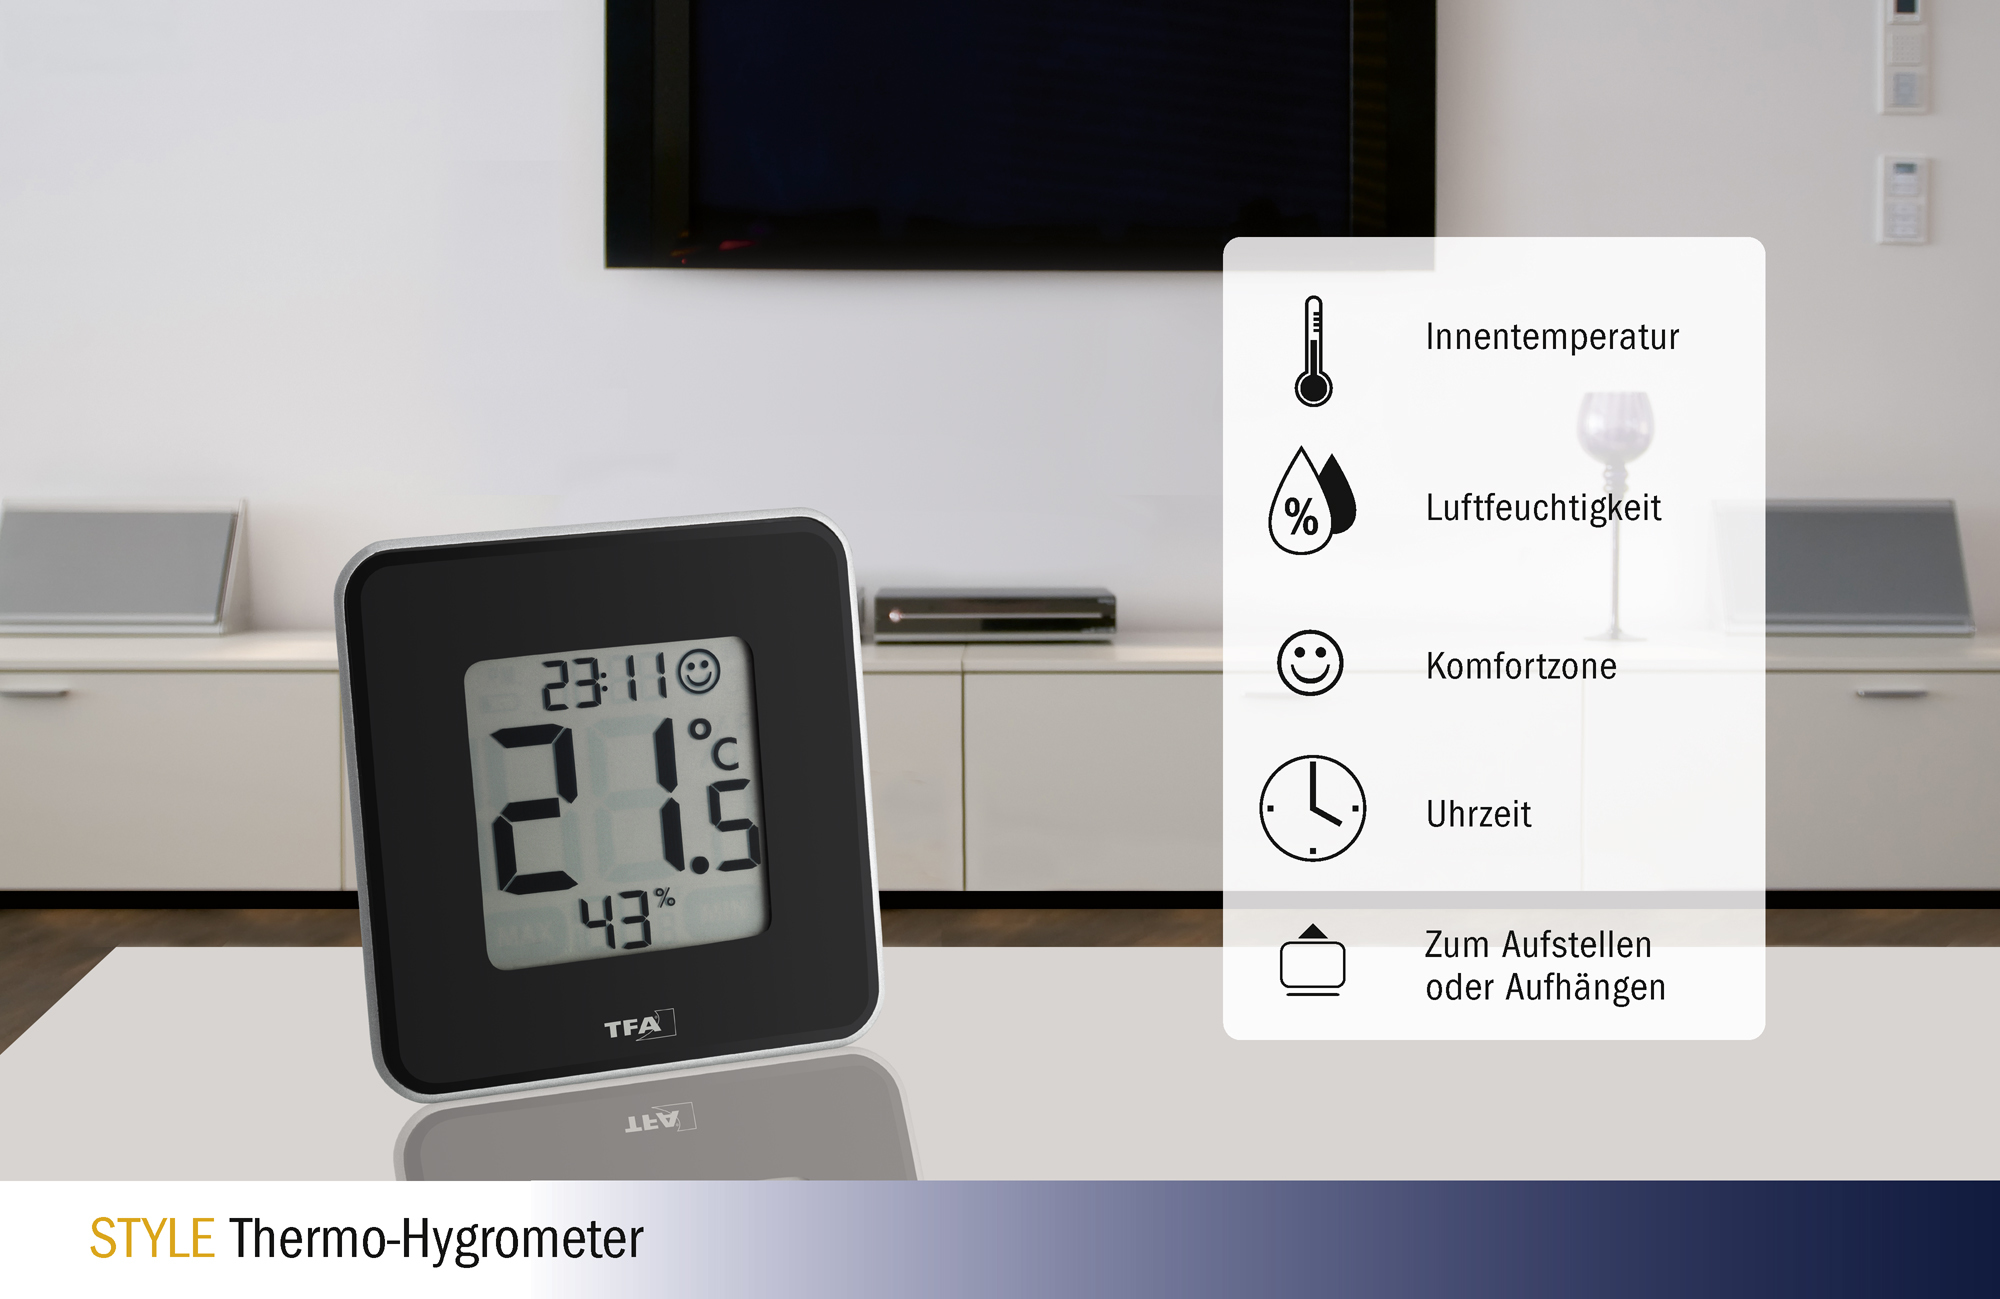 Style_ThermoHygrometer_30502101_Icons.jpg